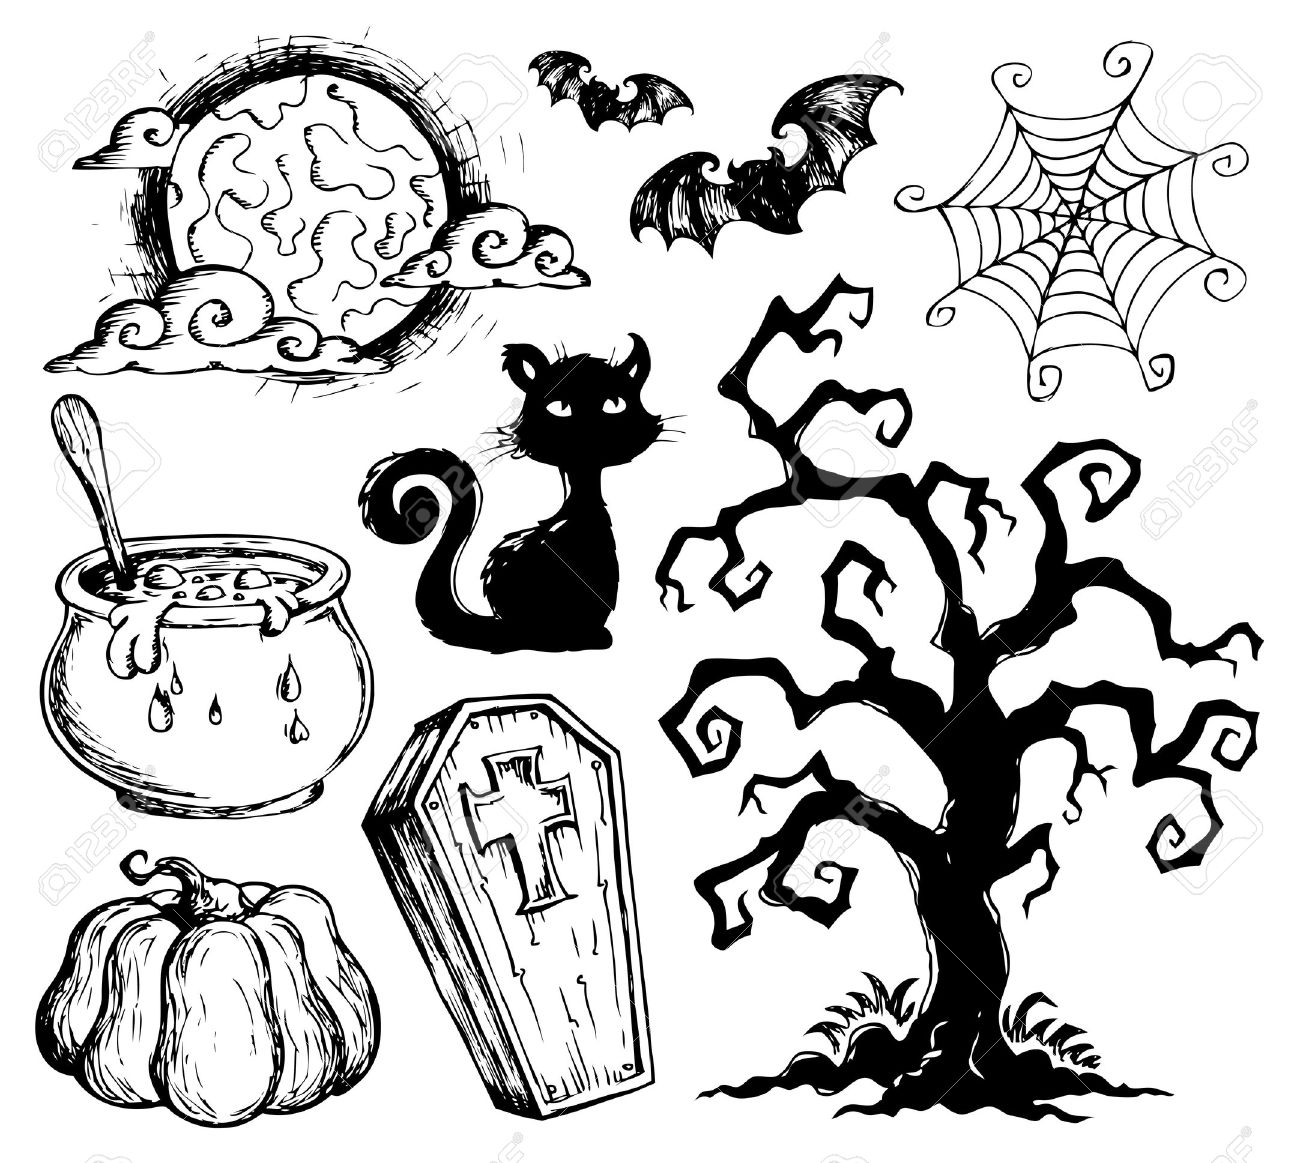 Halloween Drawings Royalty Free Cliparts, Vectors, And Stock ...